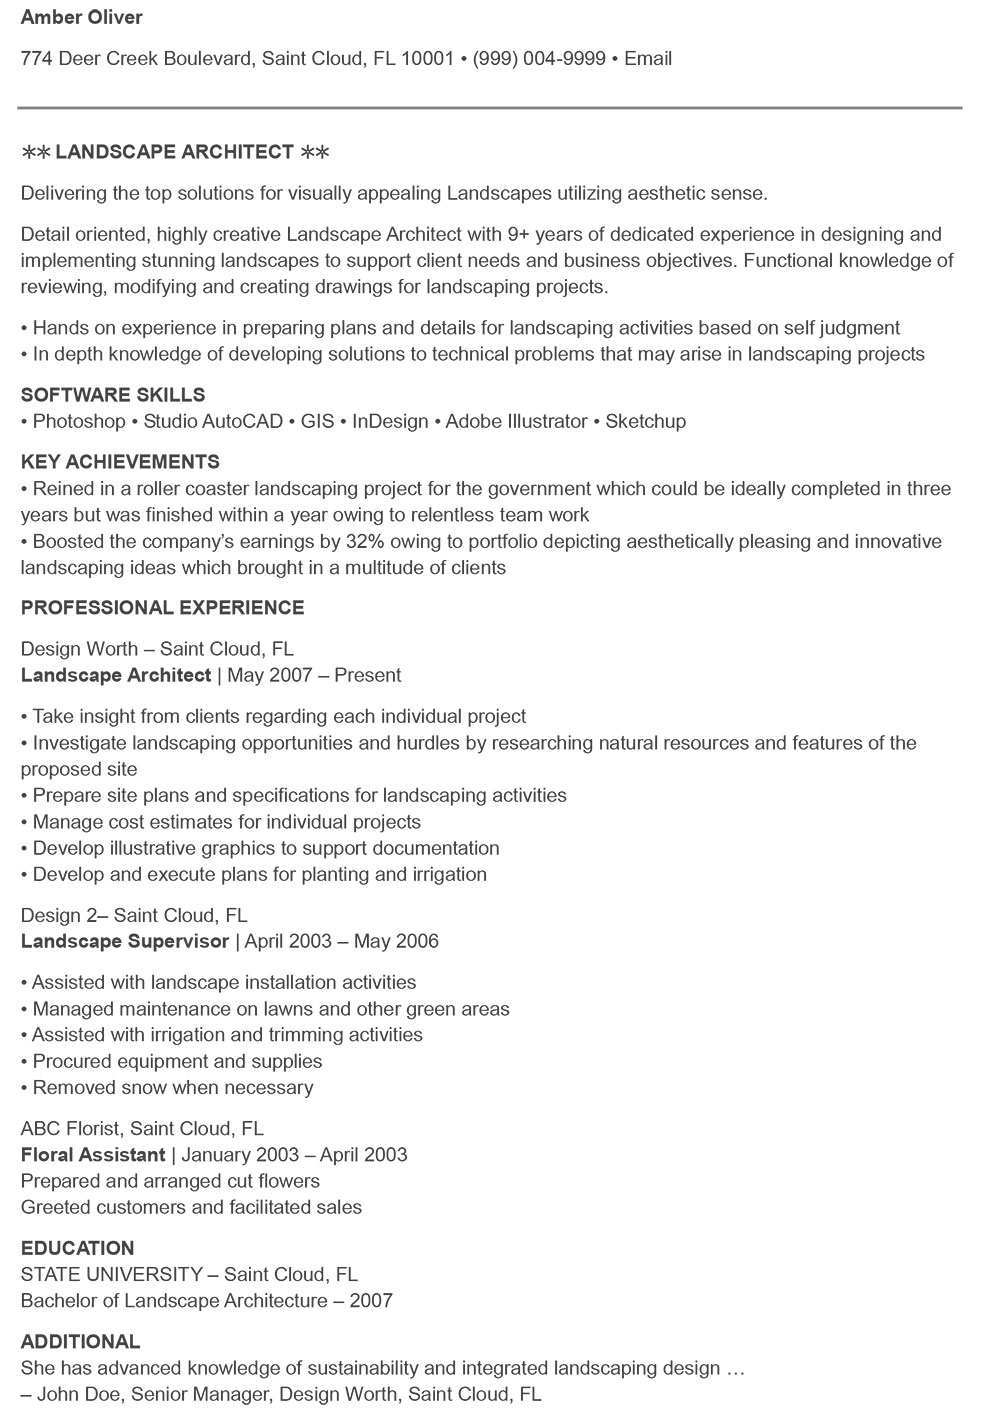 the architecture resume that gets you hired templates